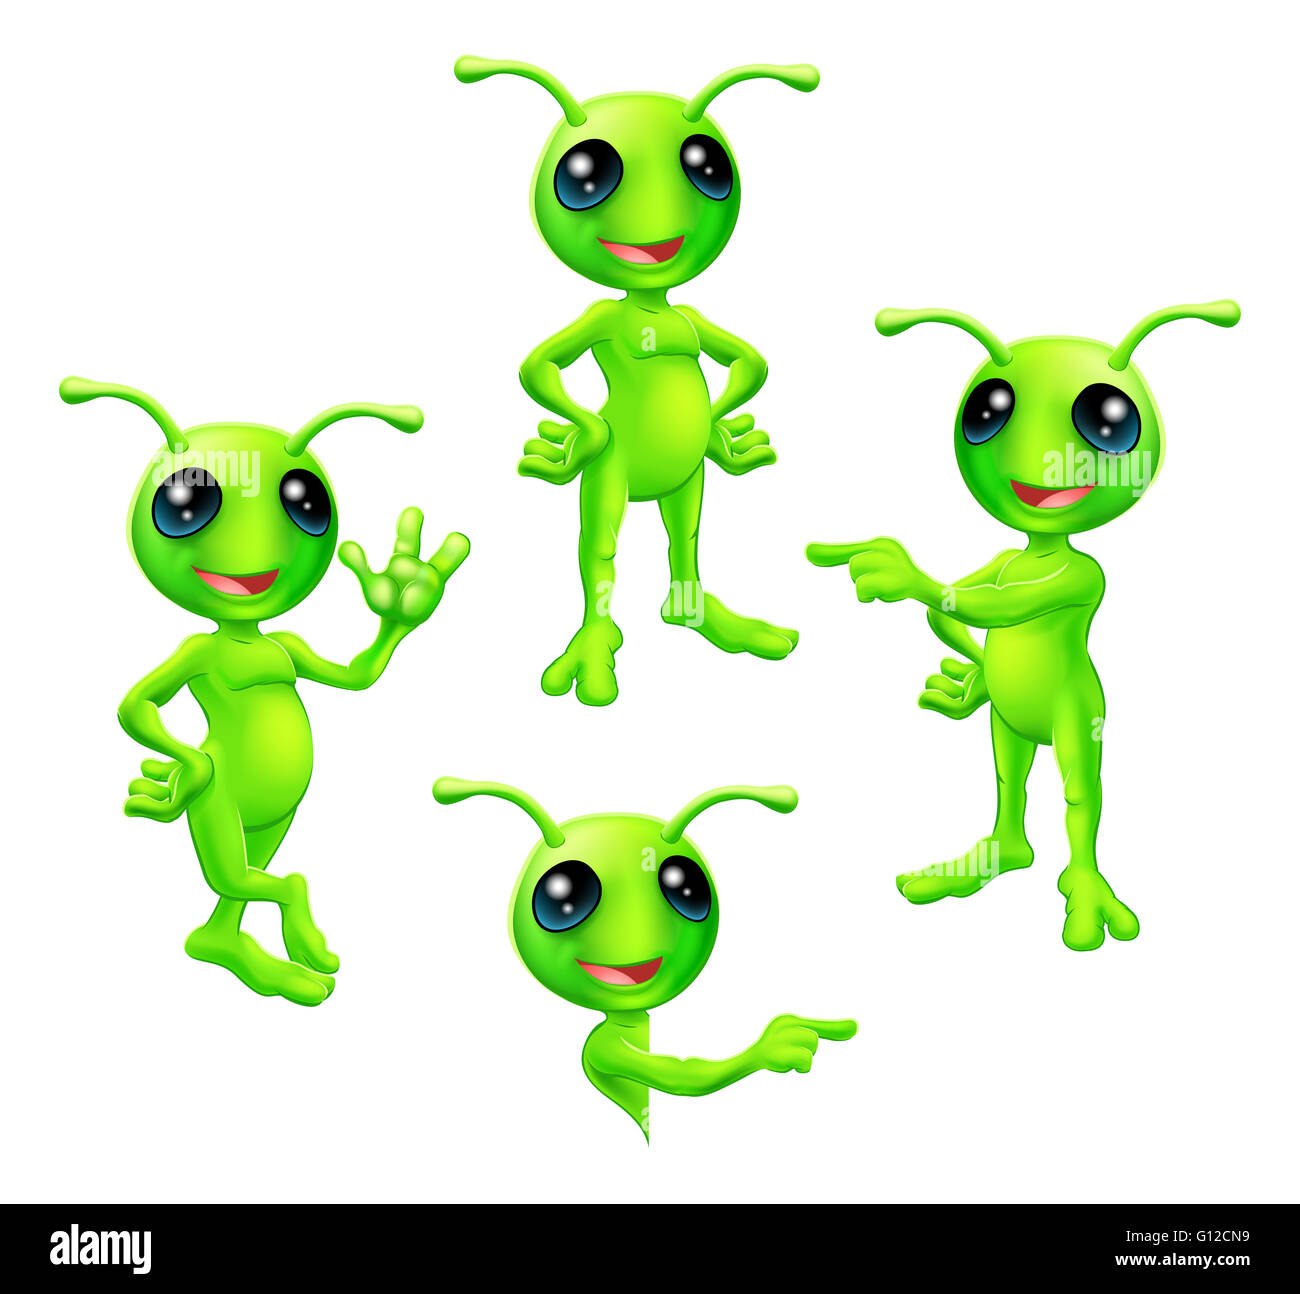 A cute cartoon green alien Martian character with antennae in various poses - Stock Image